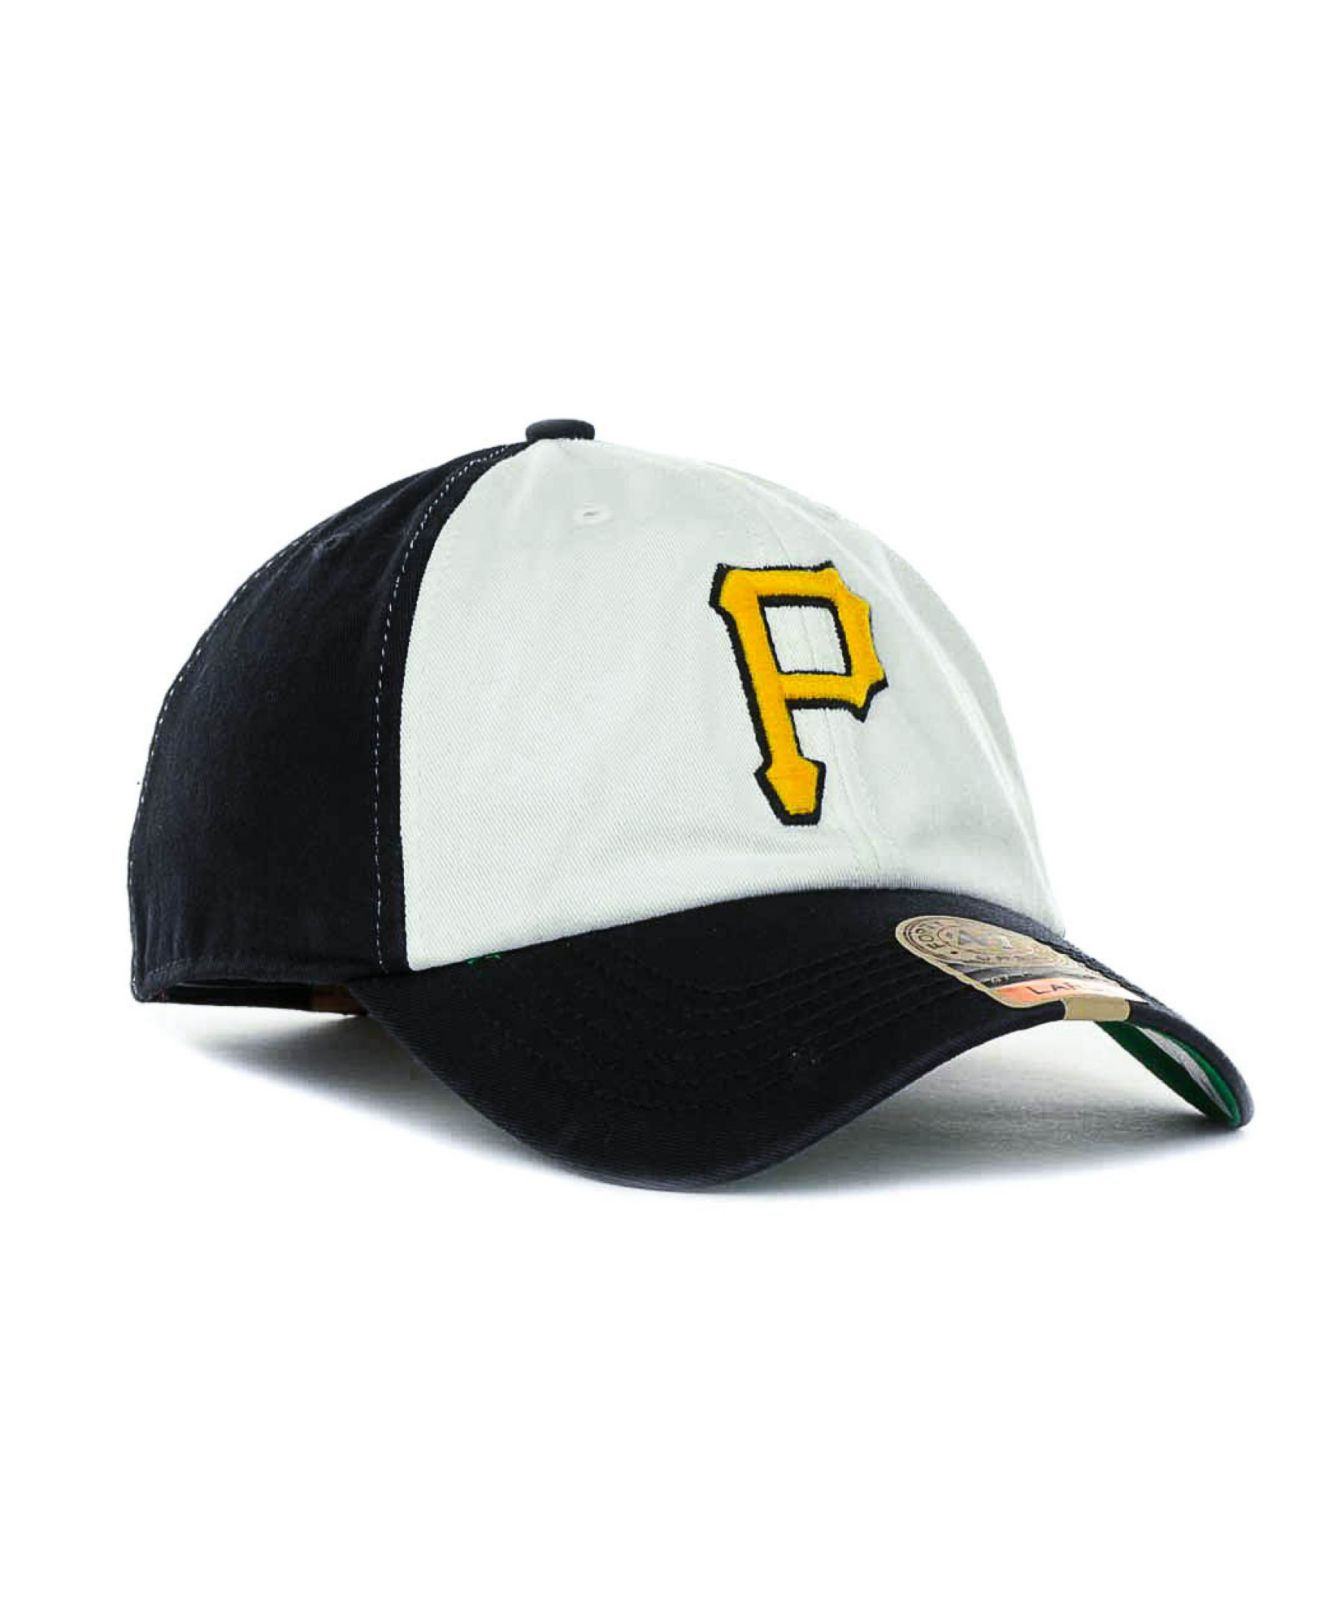 d48ccf261ebd8 47 Brand Pittsburgh Pirates Hall Of Famer Cap in Black for Men - Lyst